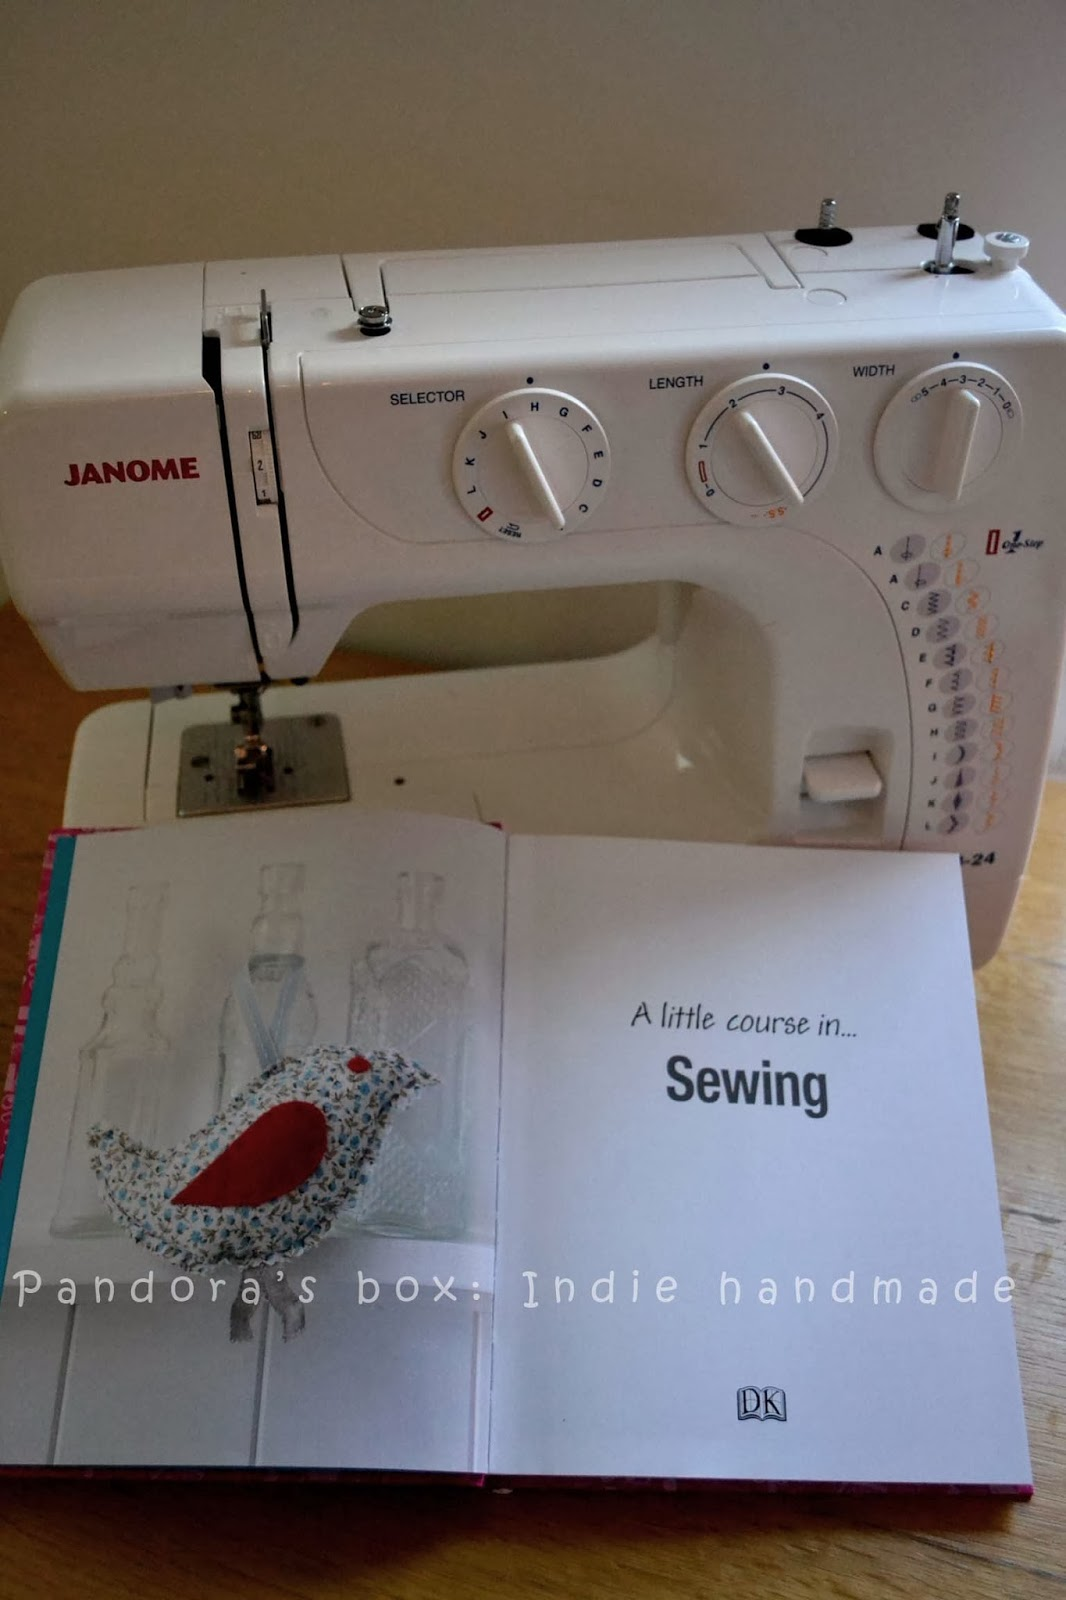 Book review: A little course in sewing